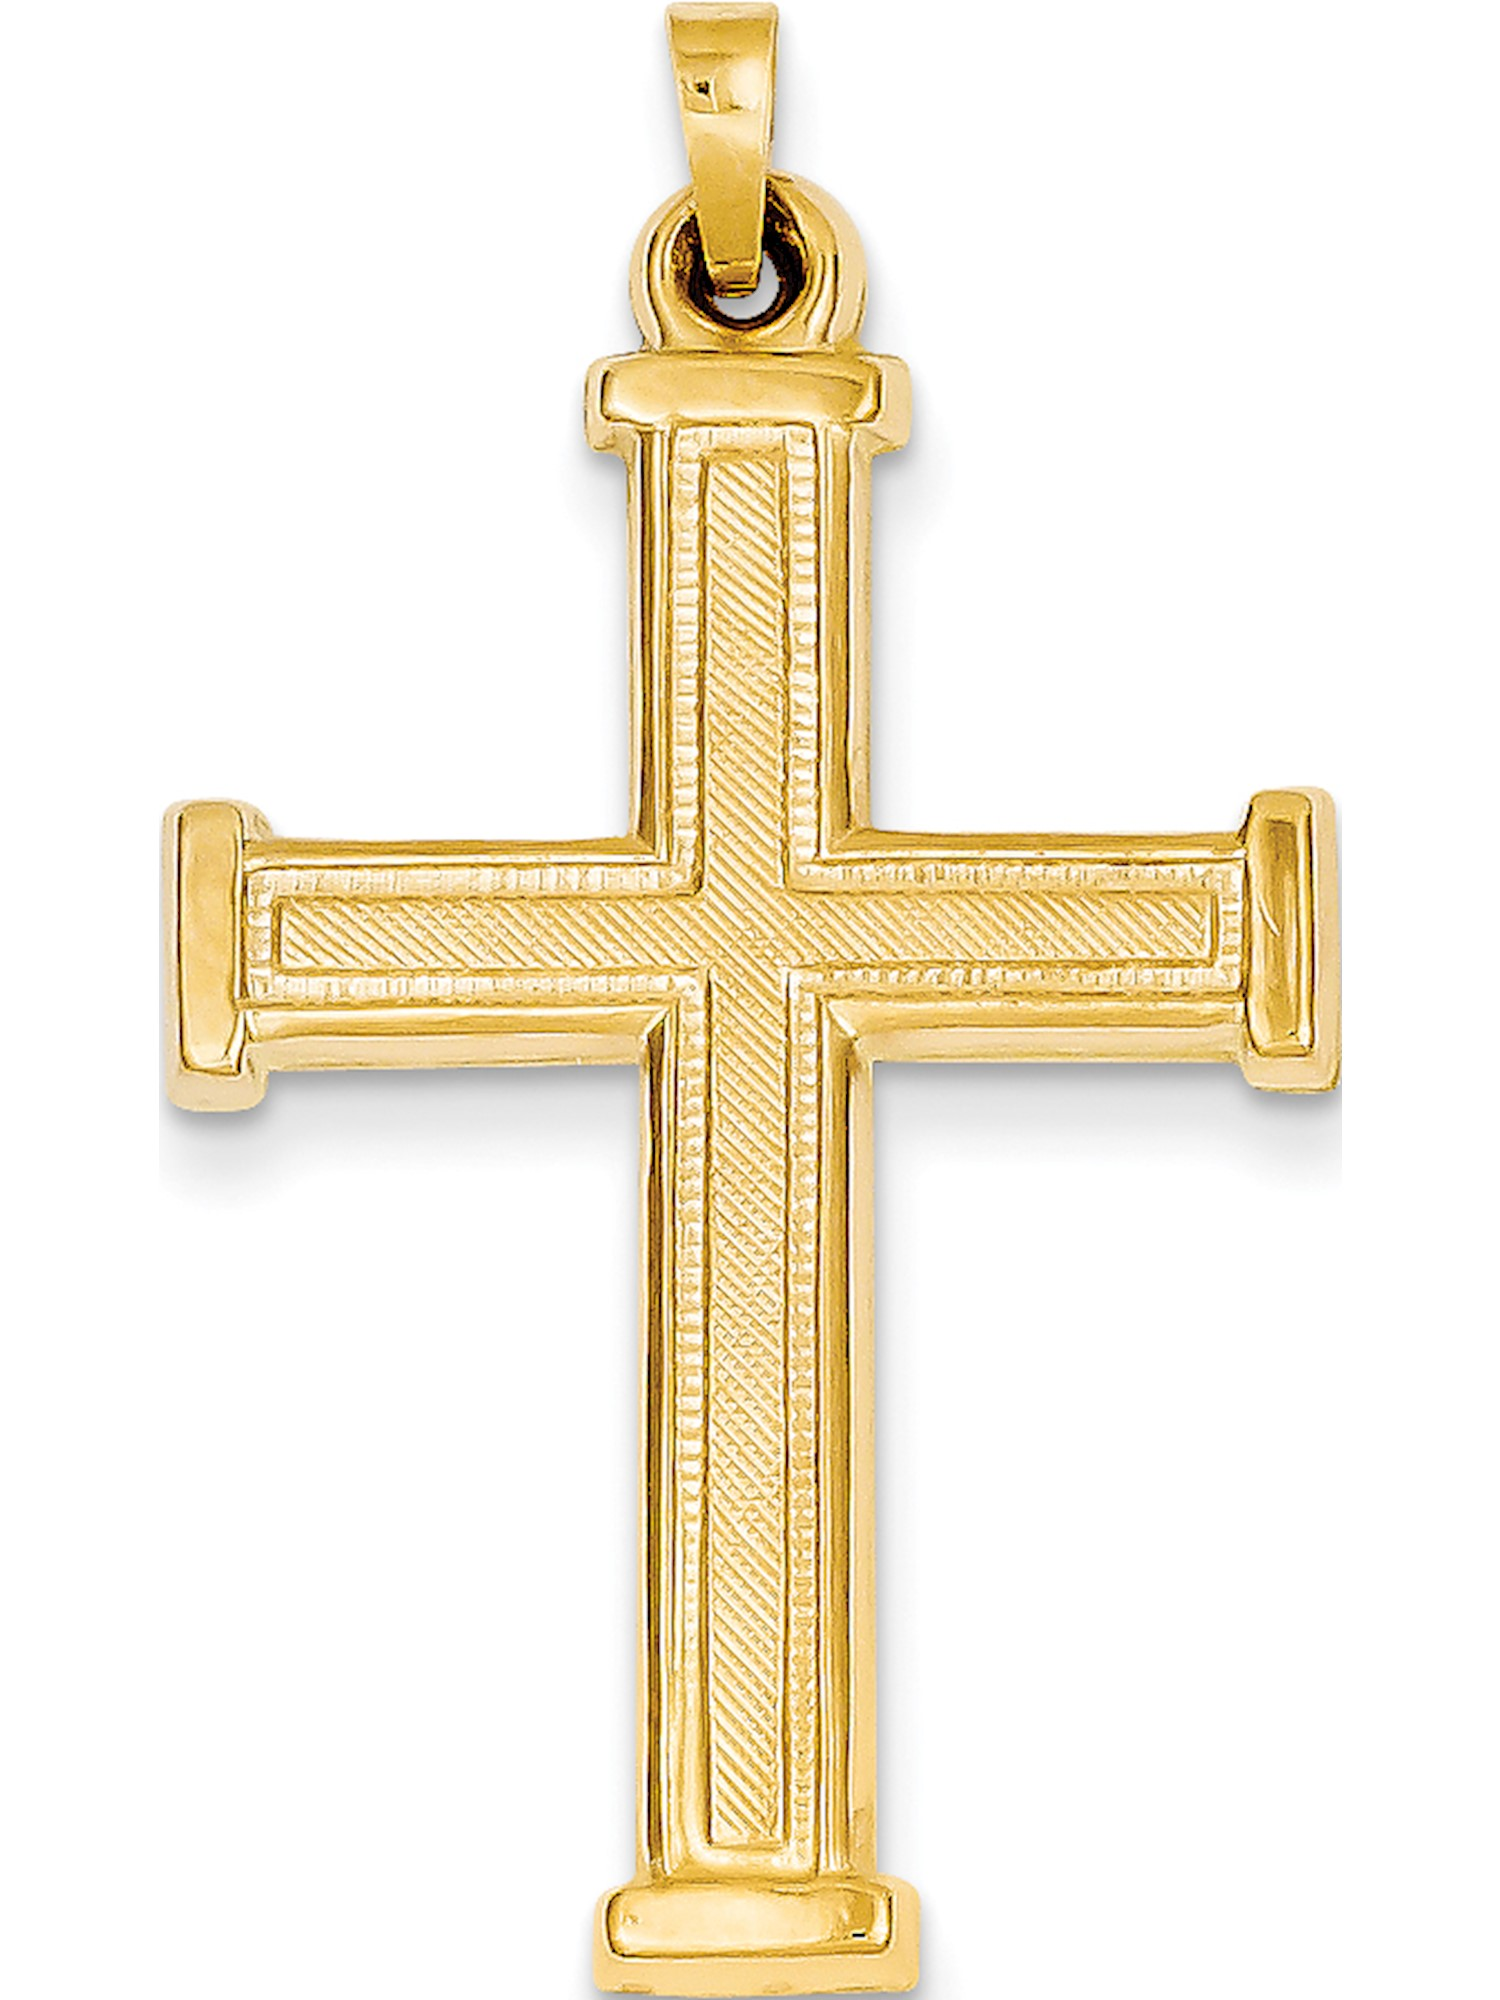 Details about  /14k Yellow Gold Polished And Textured Border Latin Cross Charm Pendant